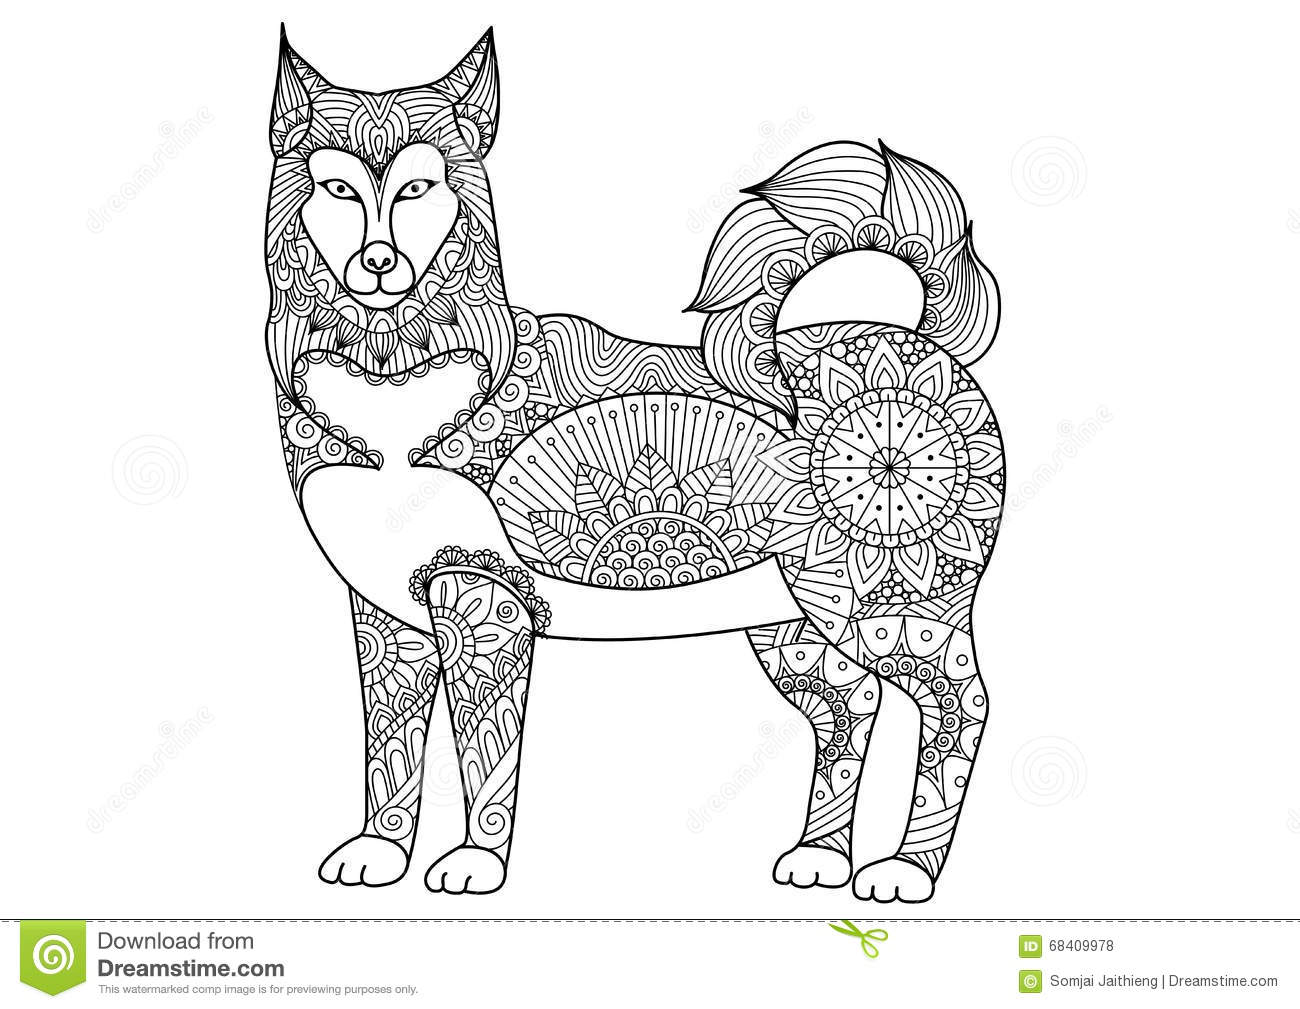 Tattoo designs coloring book - Alaskan Malamute Dog Line Art Design For Tattoo T Shirt Design Coloring Book For Adult And So On Stock